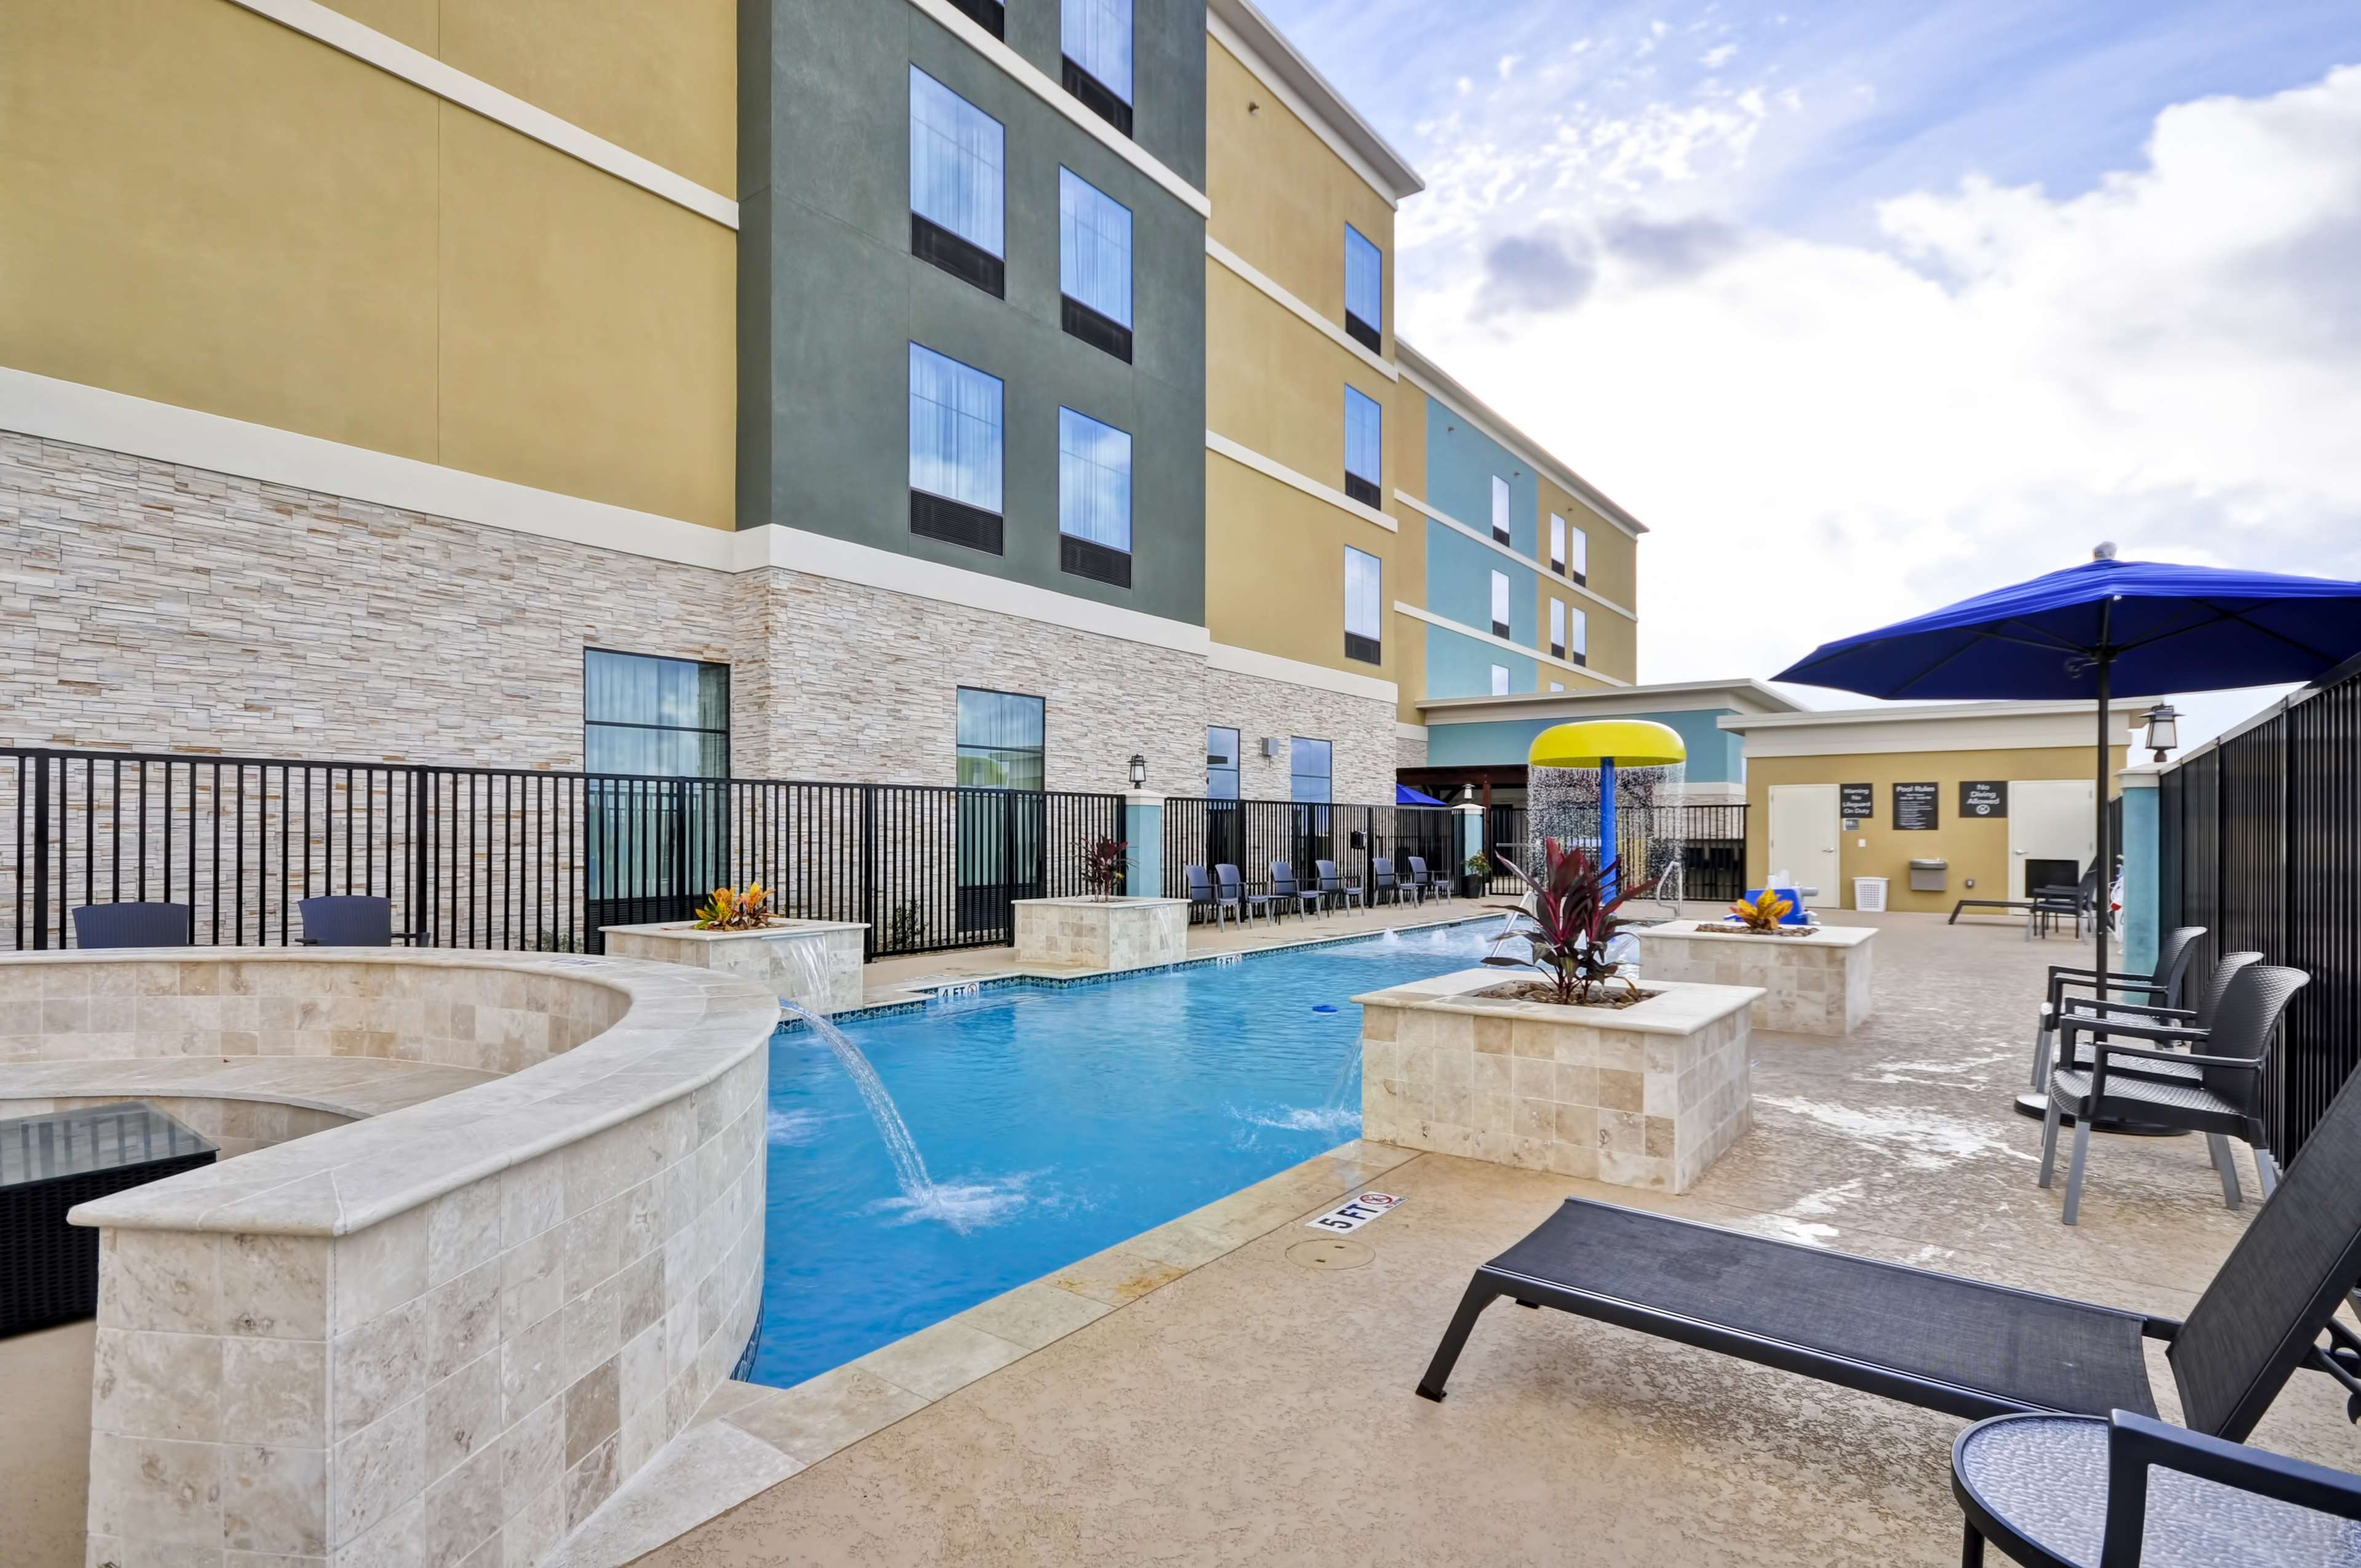 Homewood Suites by Hilton New Braunfels image 20